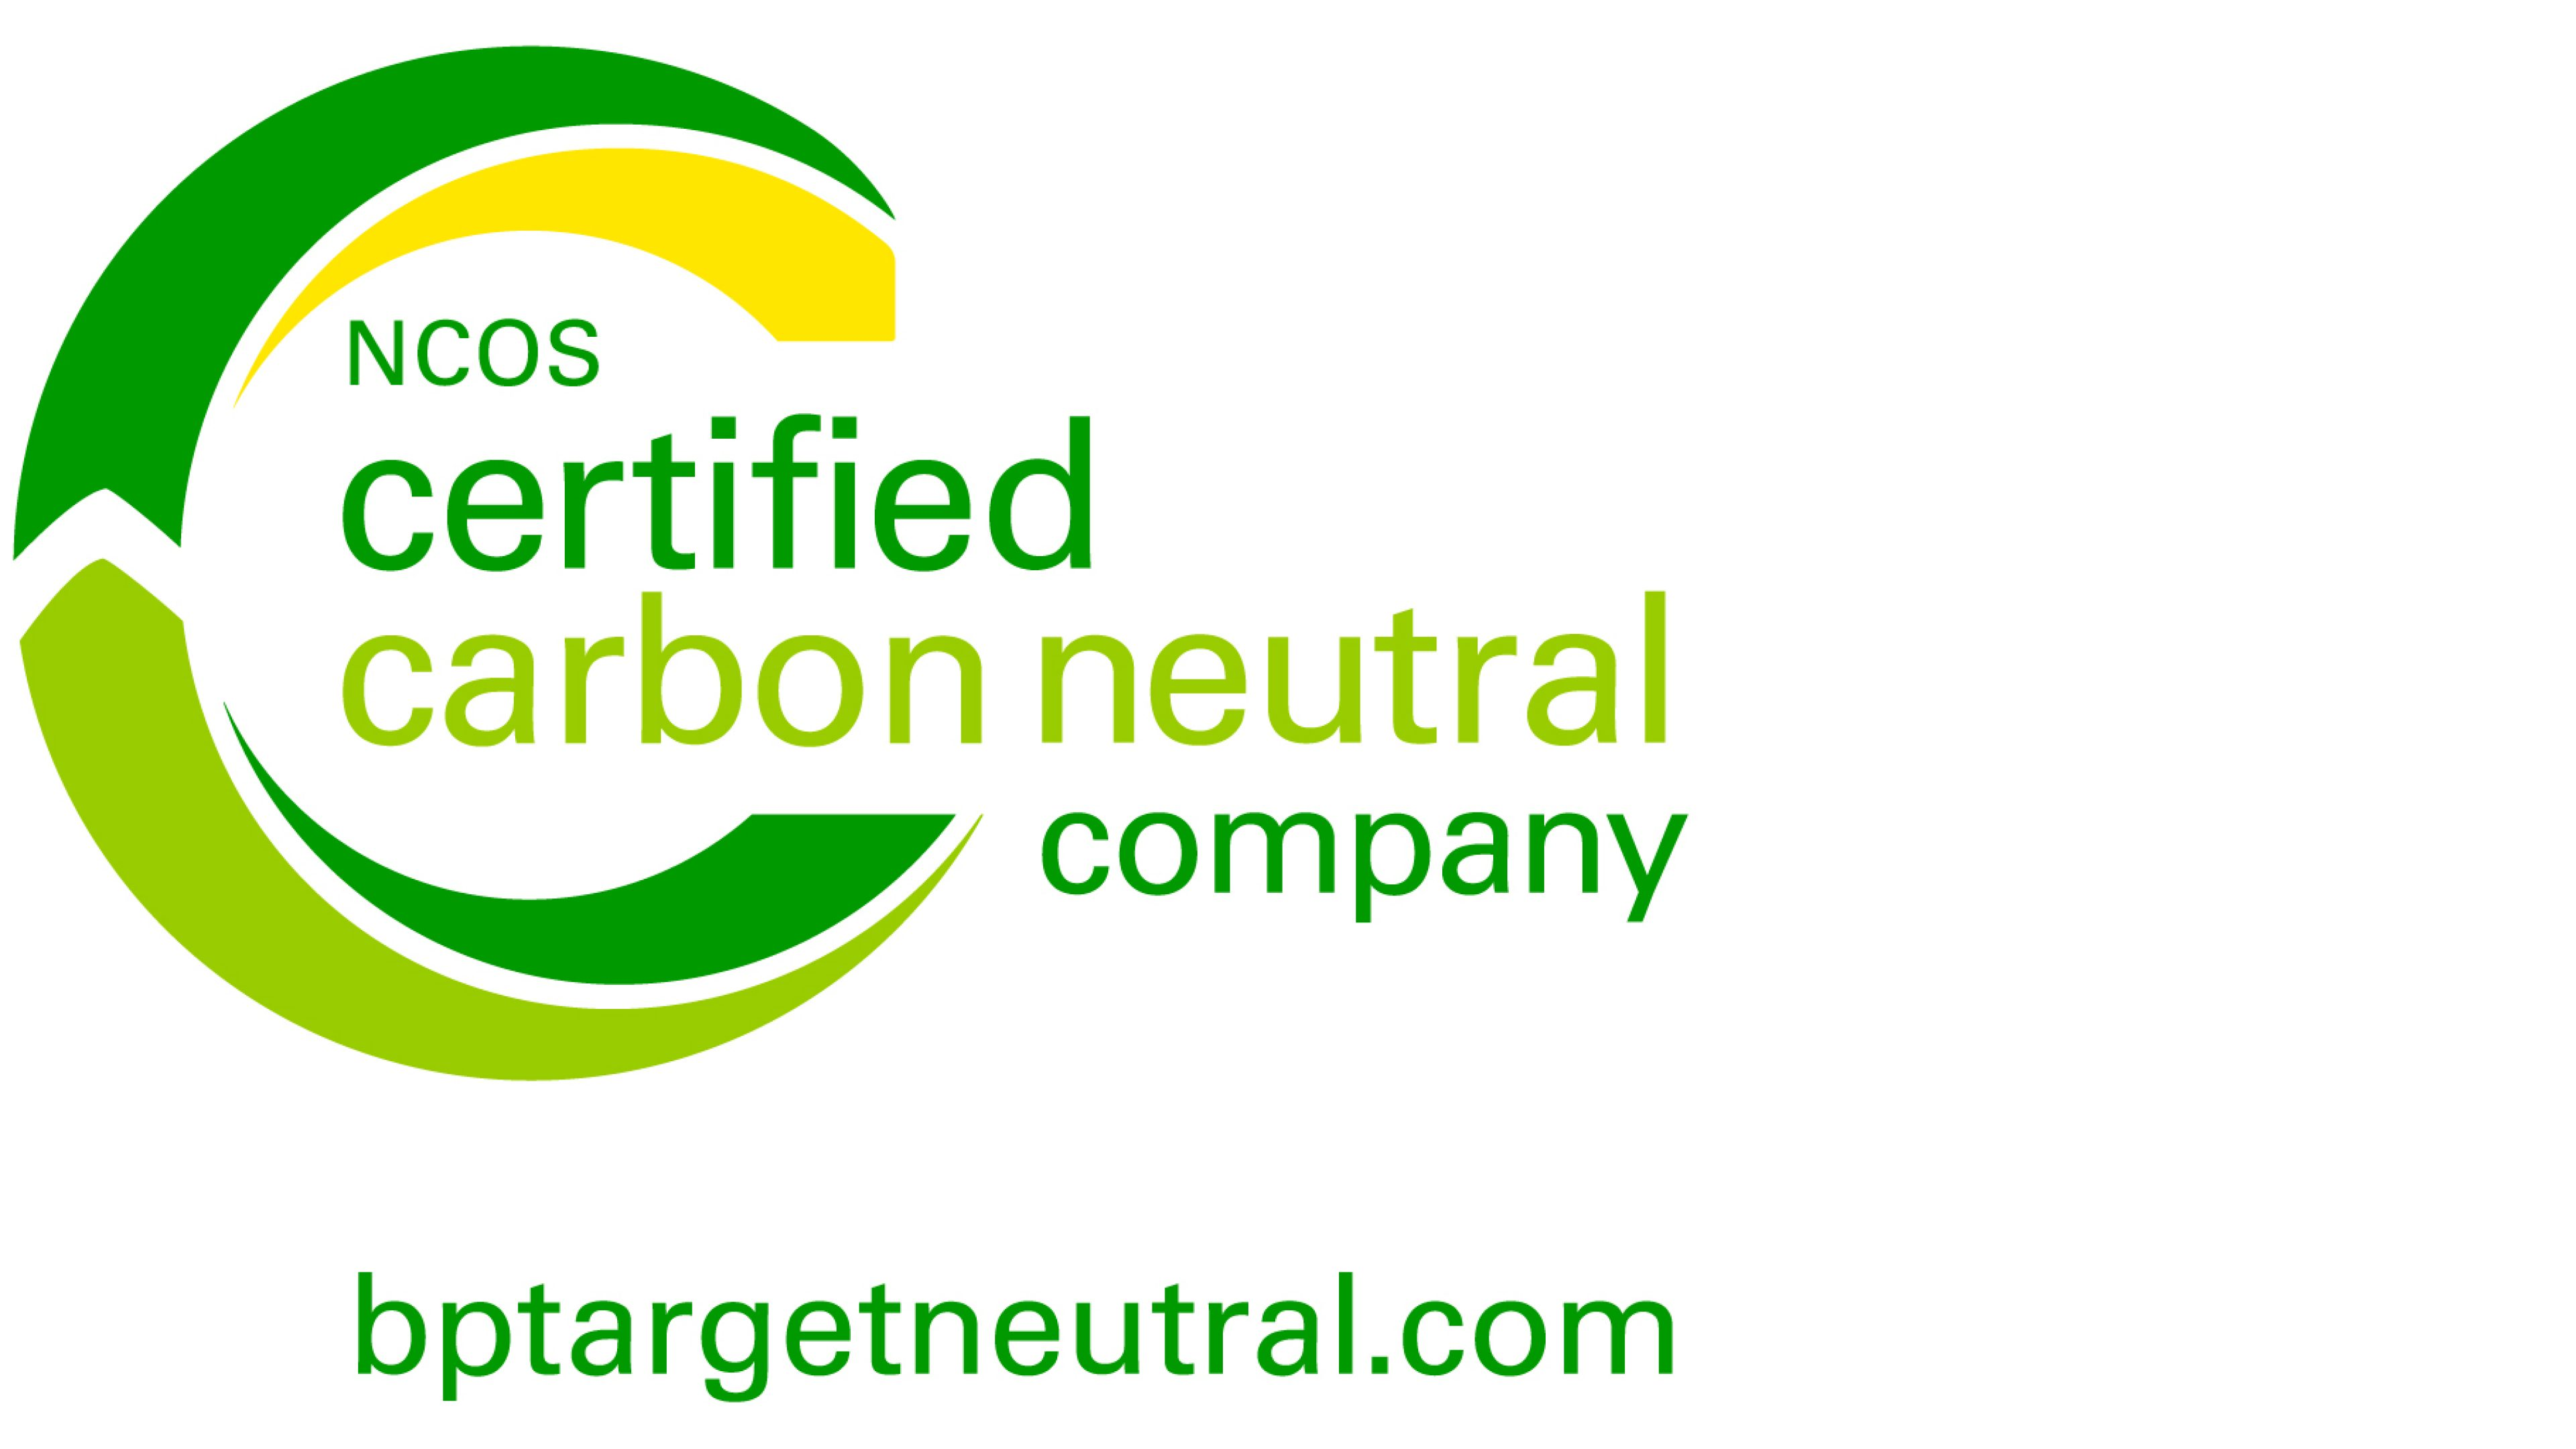 Certified Carbon Neutral NCOS logo